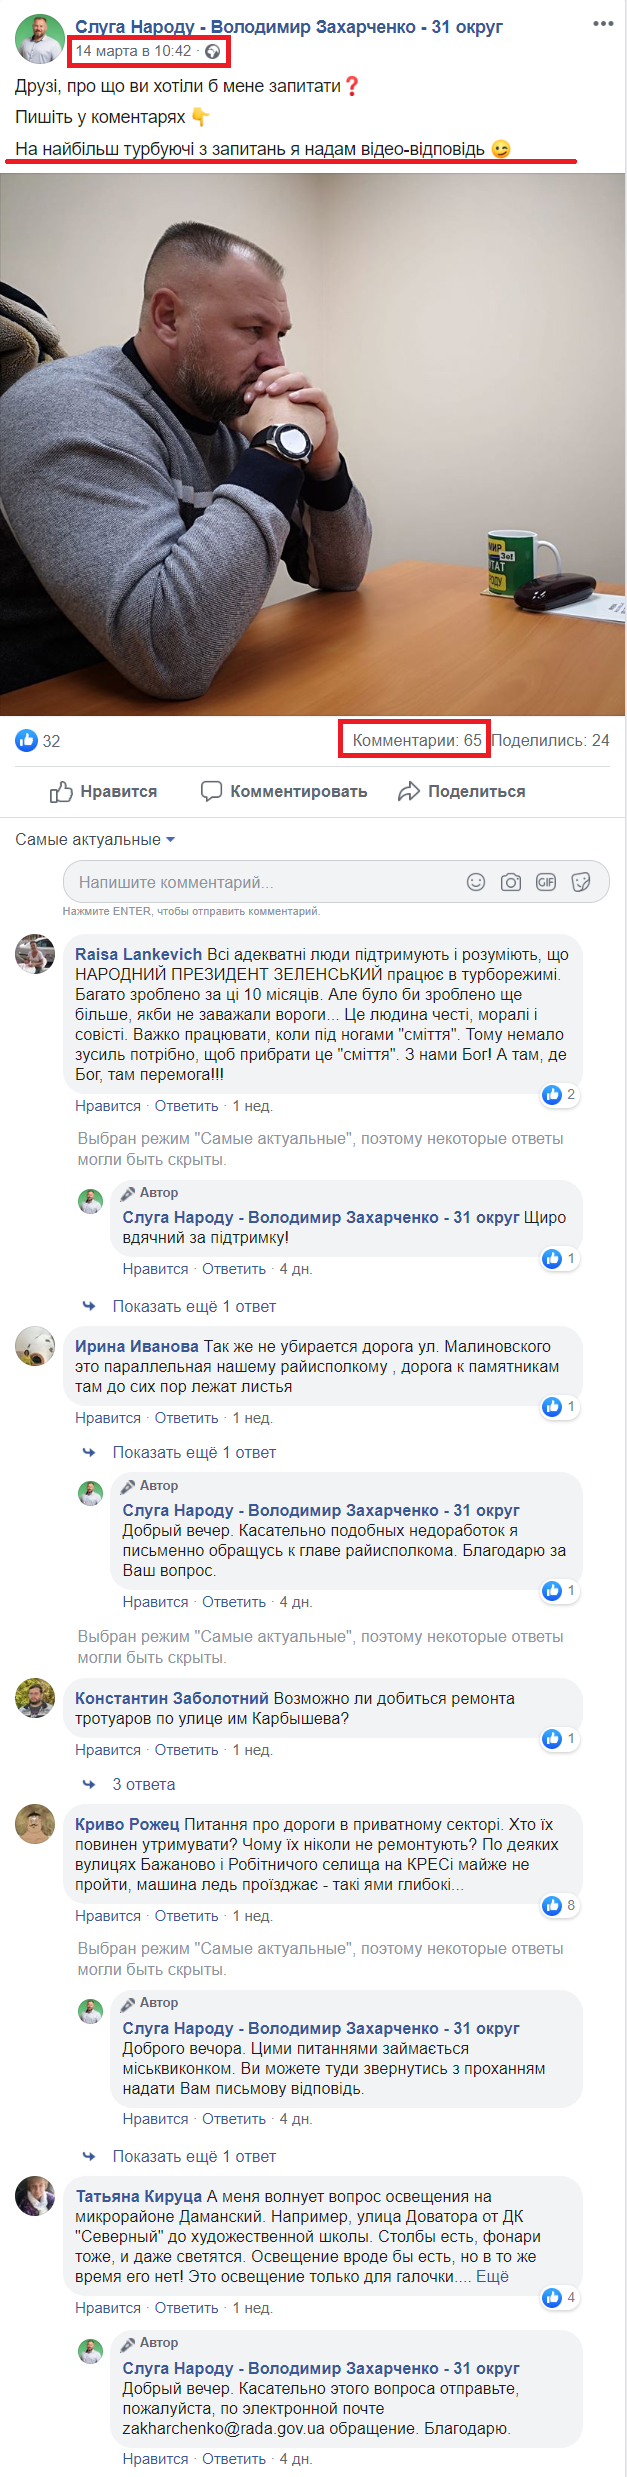 https://www.facebook.com/pg/sluganarodu.zaharchenko.31/posts/?ref=page_internal